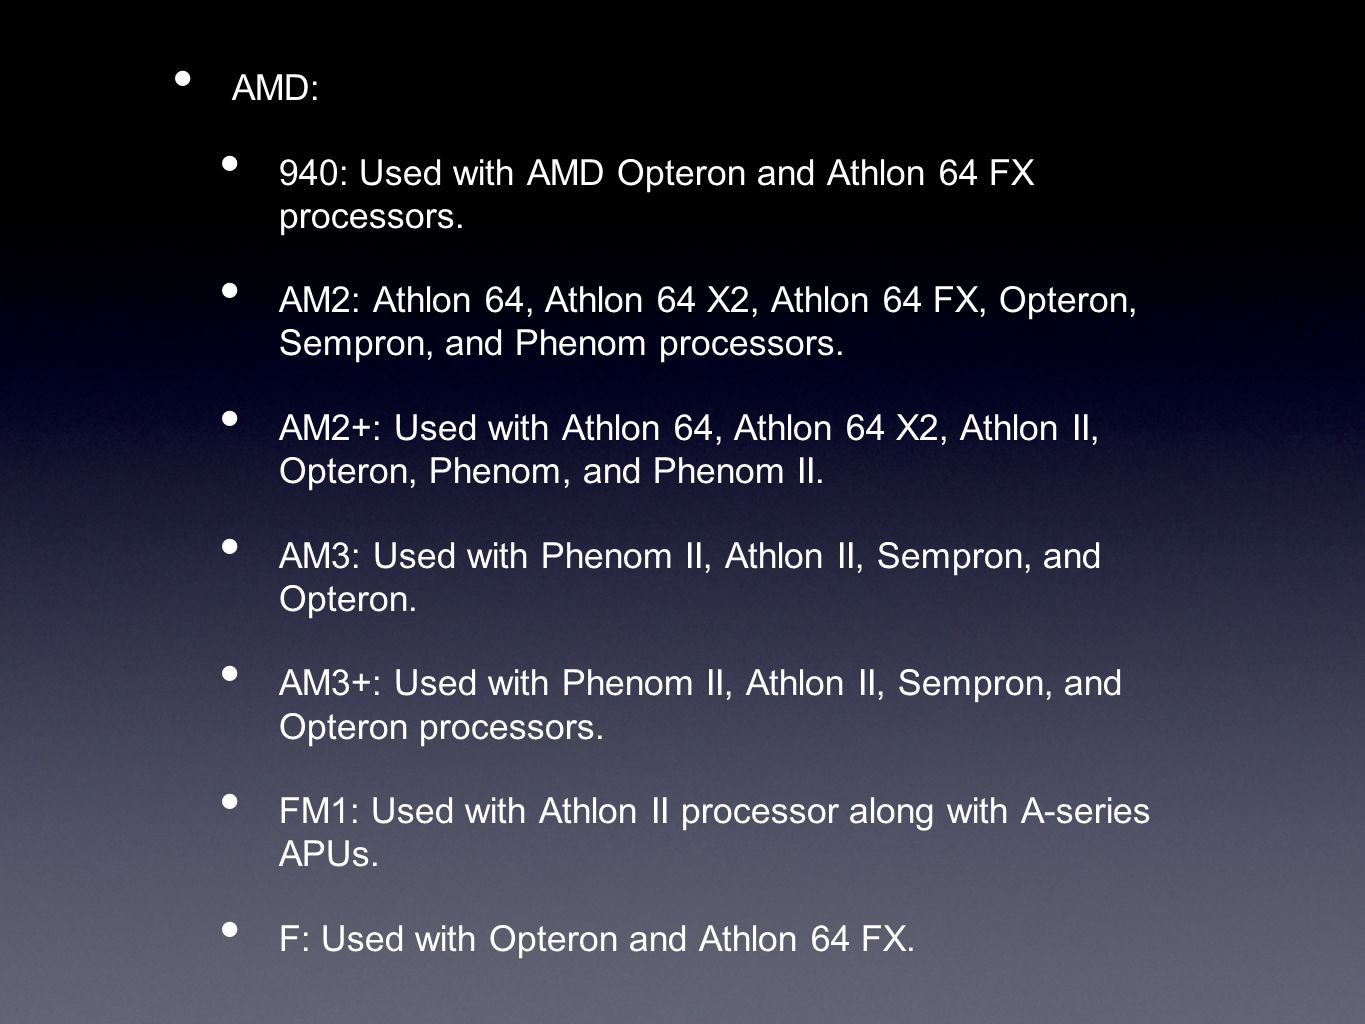 AMD: 940: Used with AMD Opteron and Athlon 64 FX processors. AM2: Athlon 64, Athlon 64 X2, Athlon 64 FX, Opteron, Sempron, and Phenom processors. AM2+